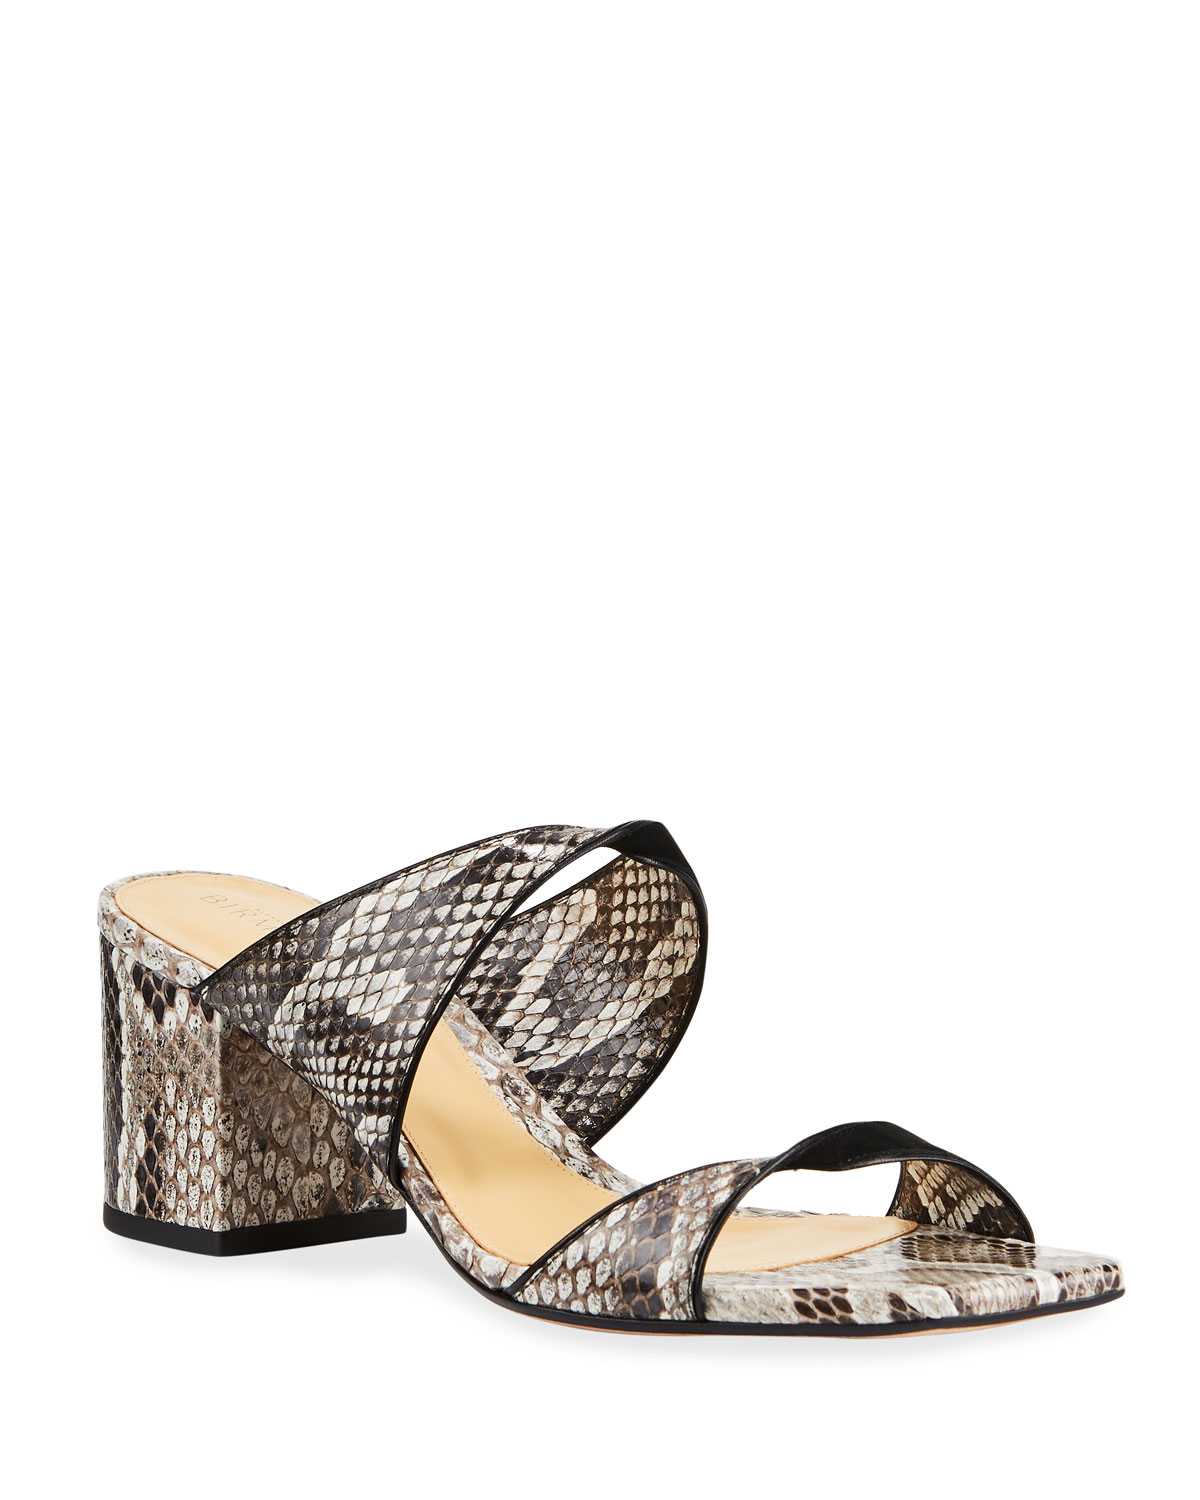 Alexandre Birman Miki Python Twist Slide Sandals